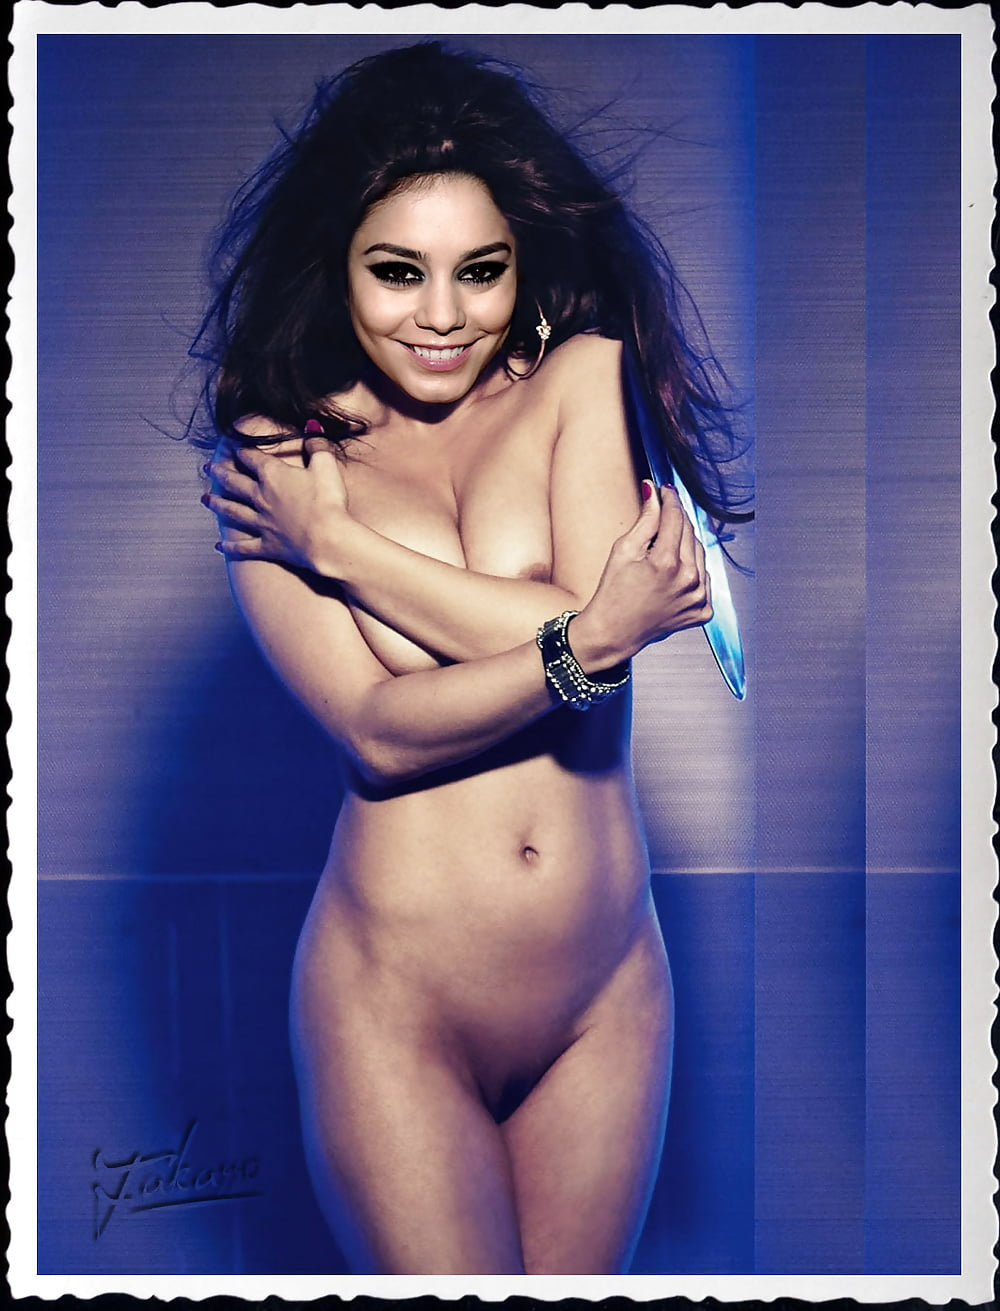 vanessa-hudgens-bending-nude-sexy-ebony-girls-in-thongs